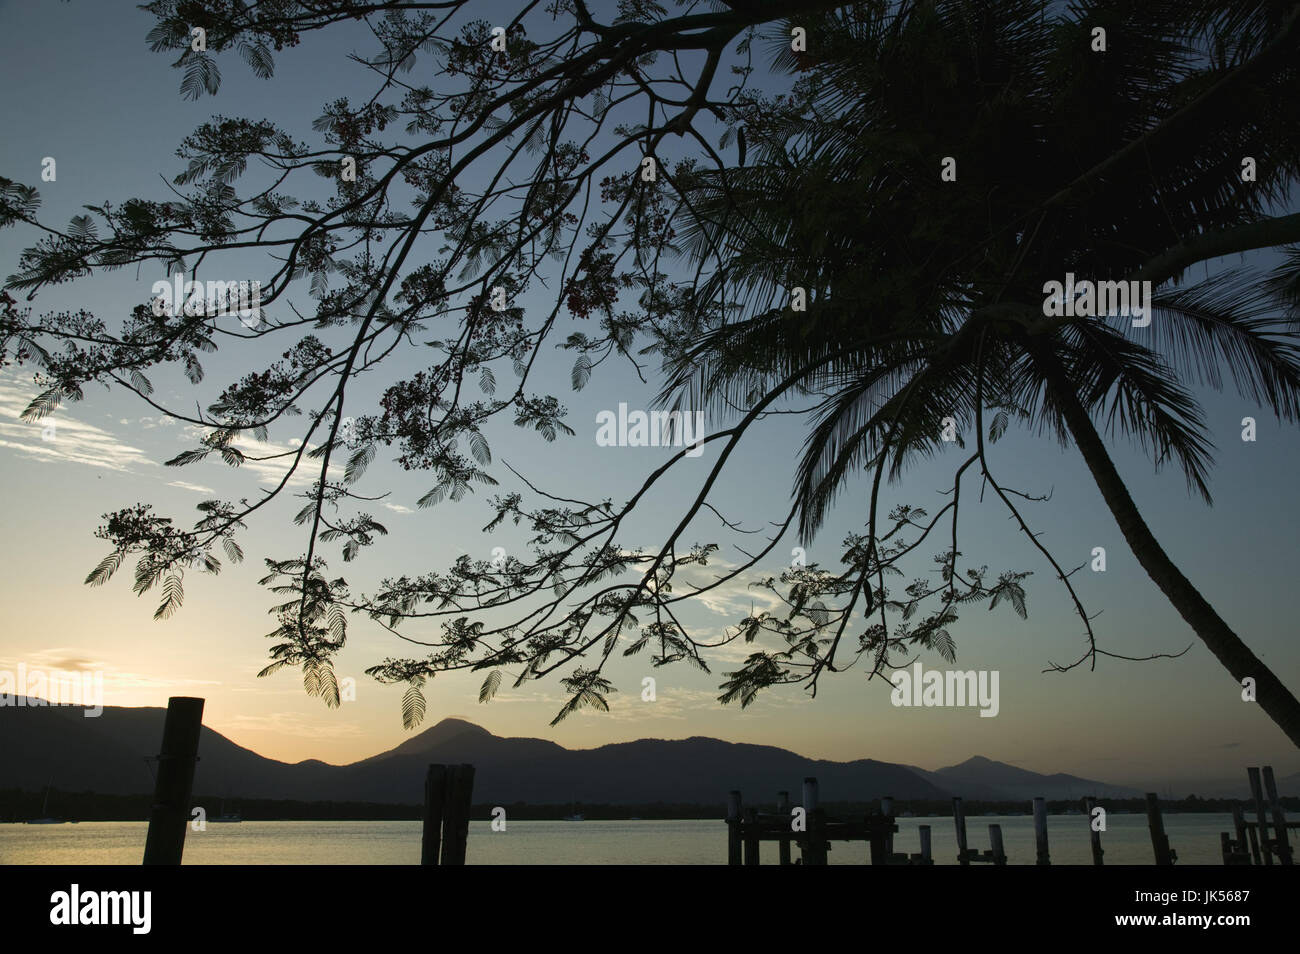 Australia, Queensland, North Coast, Cairns, Cairns Waterfront, Sunrise, Stock Photo